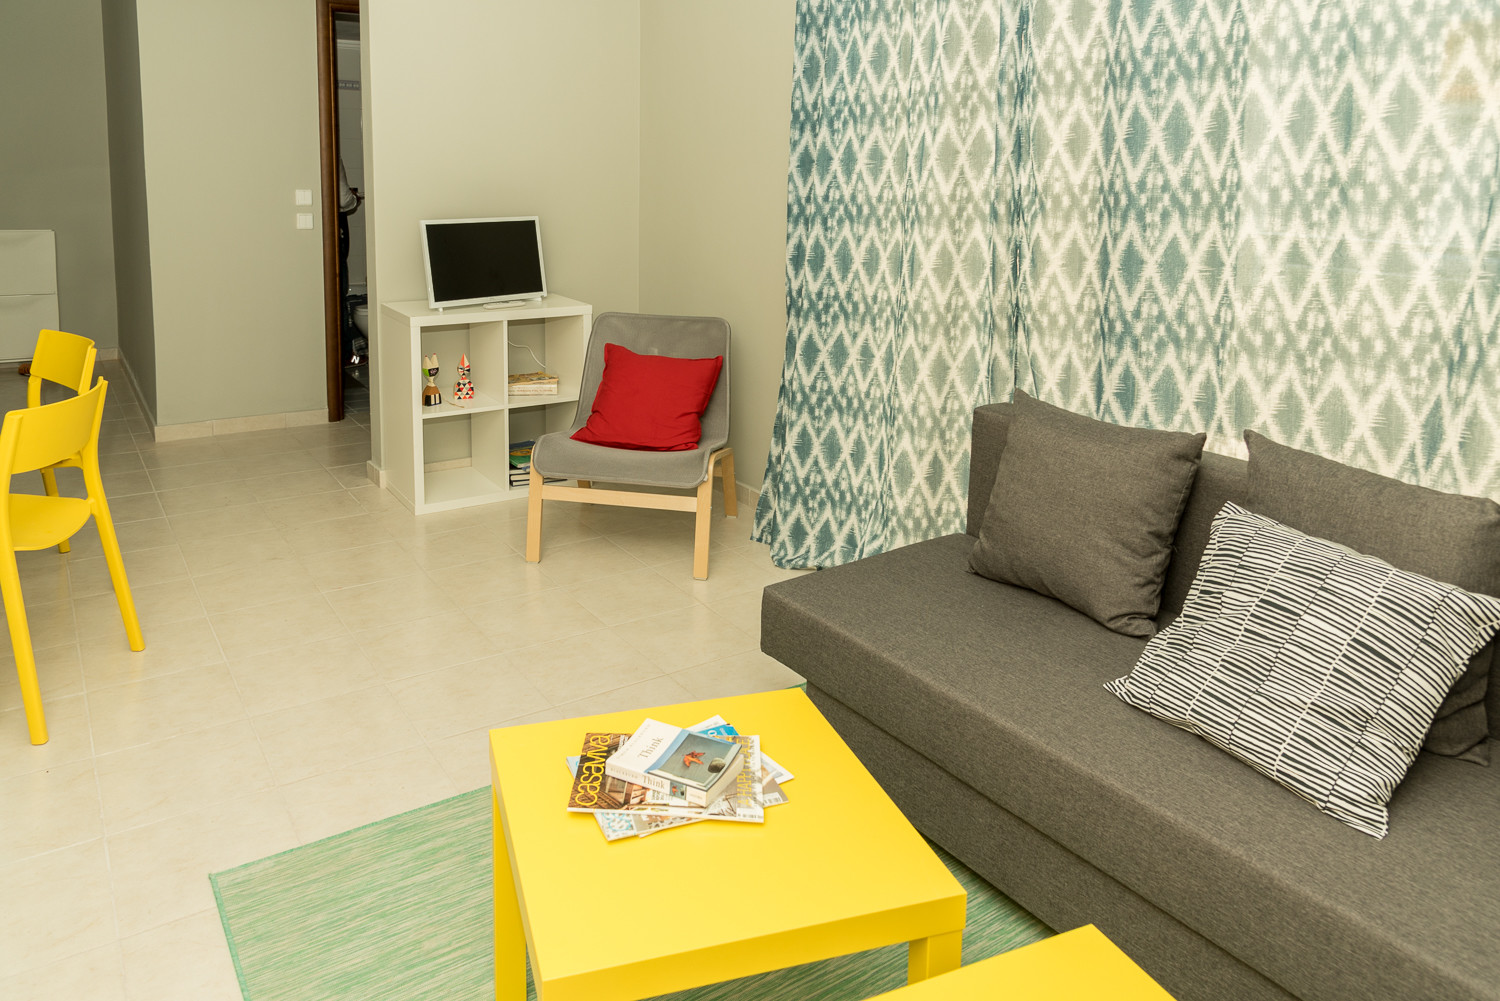 Functional and youthful apartment in Thessaloniki